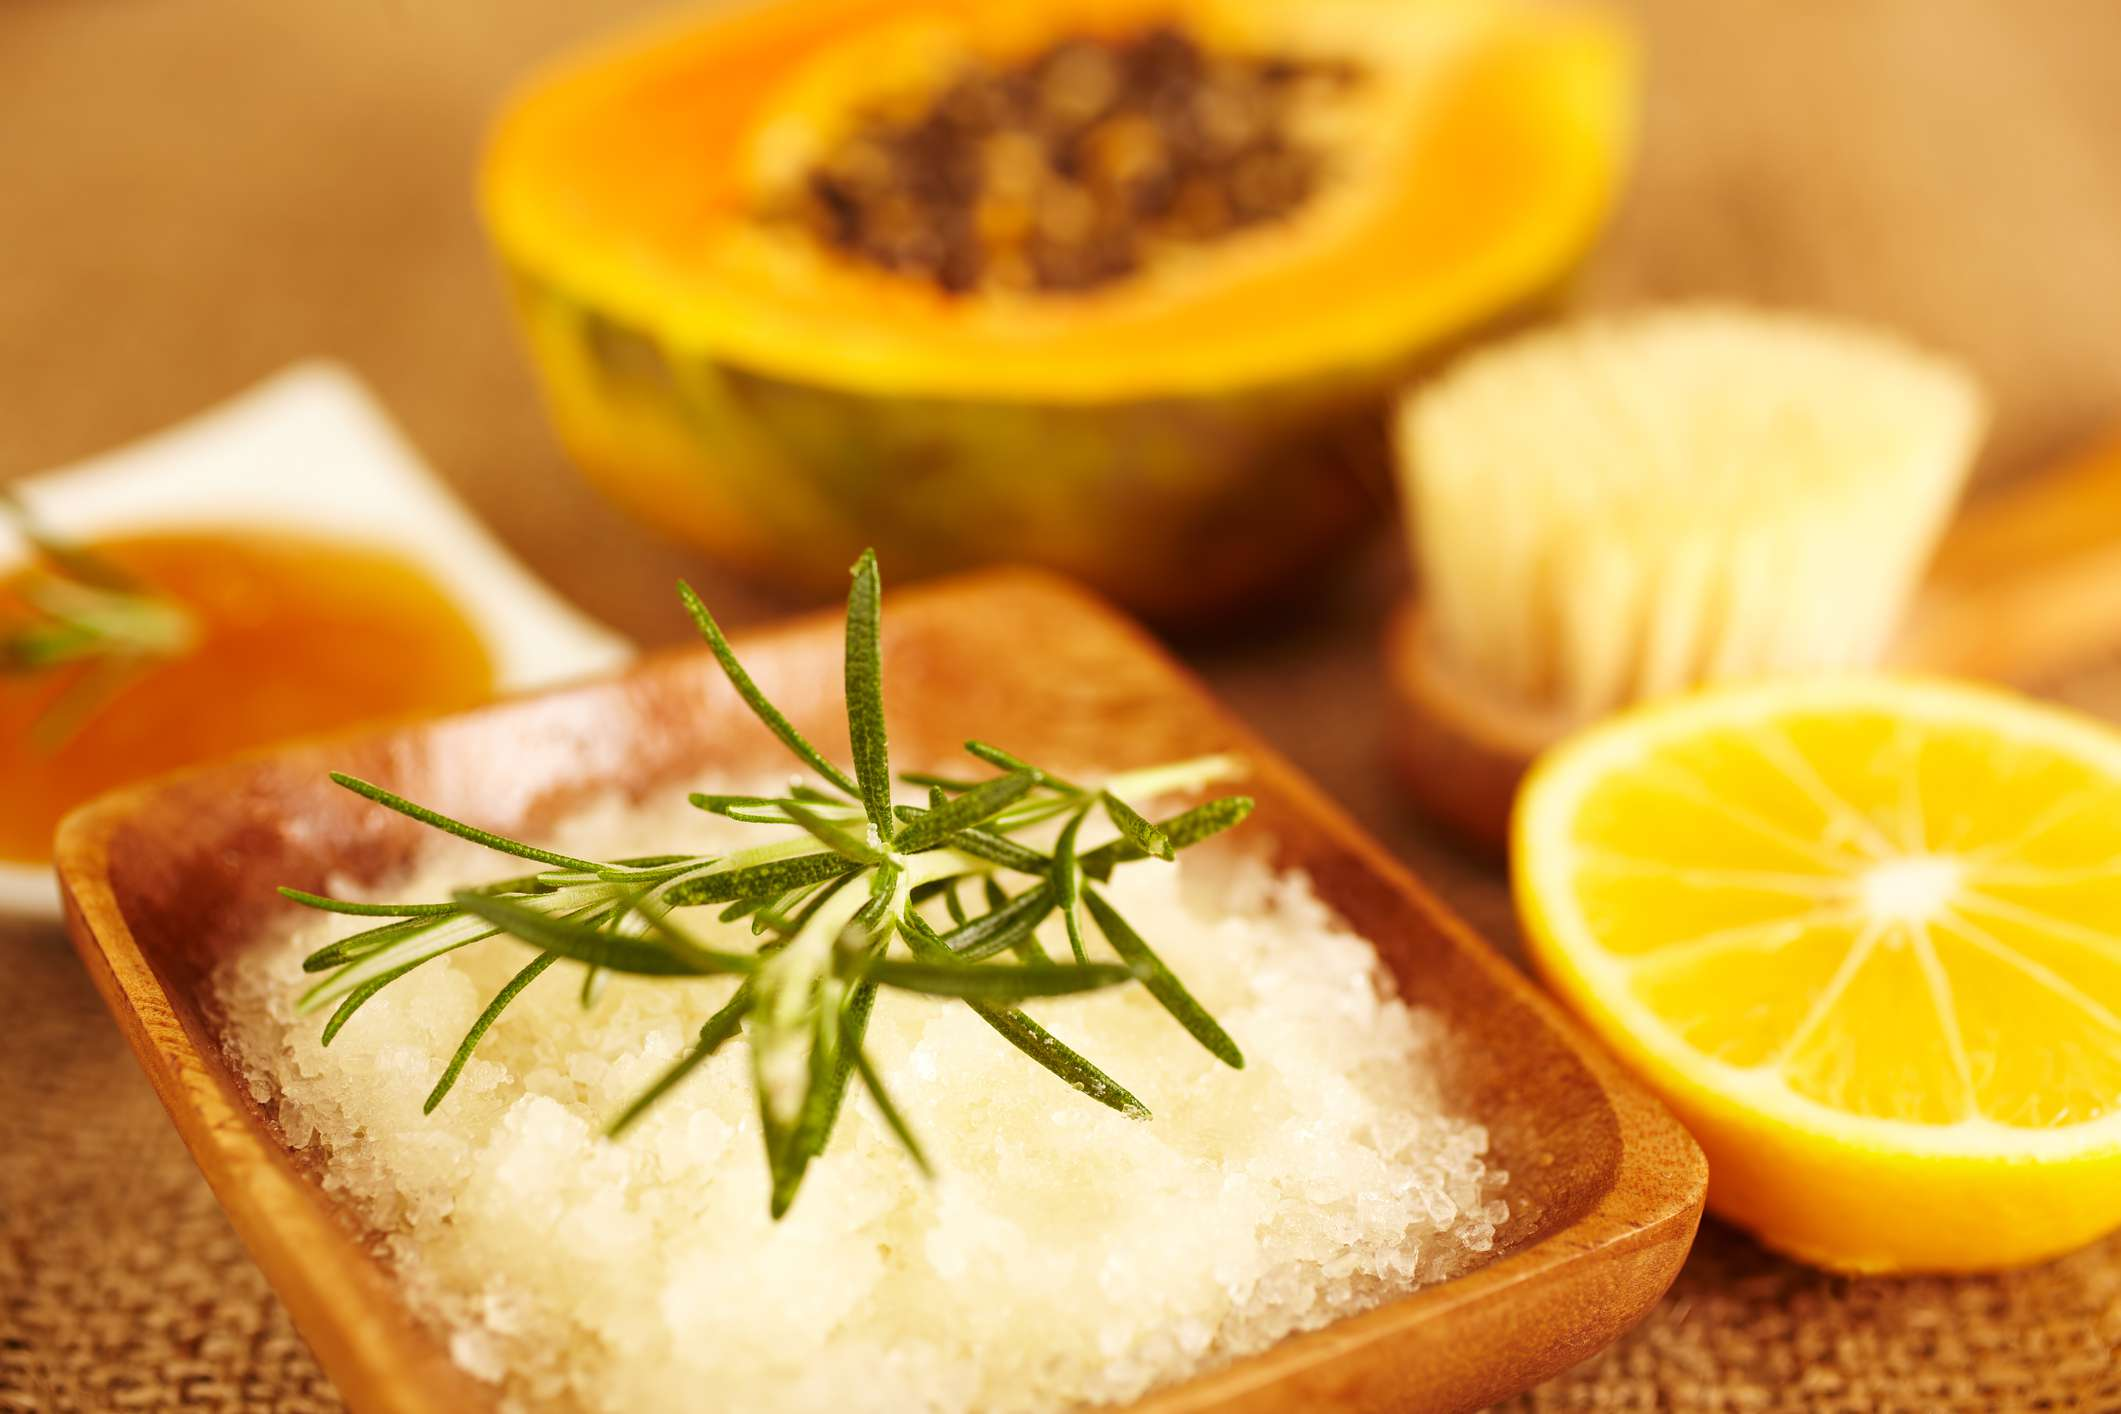 Rosemary sprig on salt scrub surrounded by lemon and melon